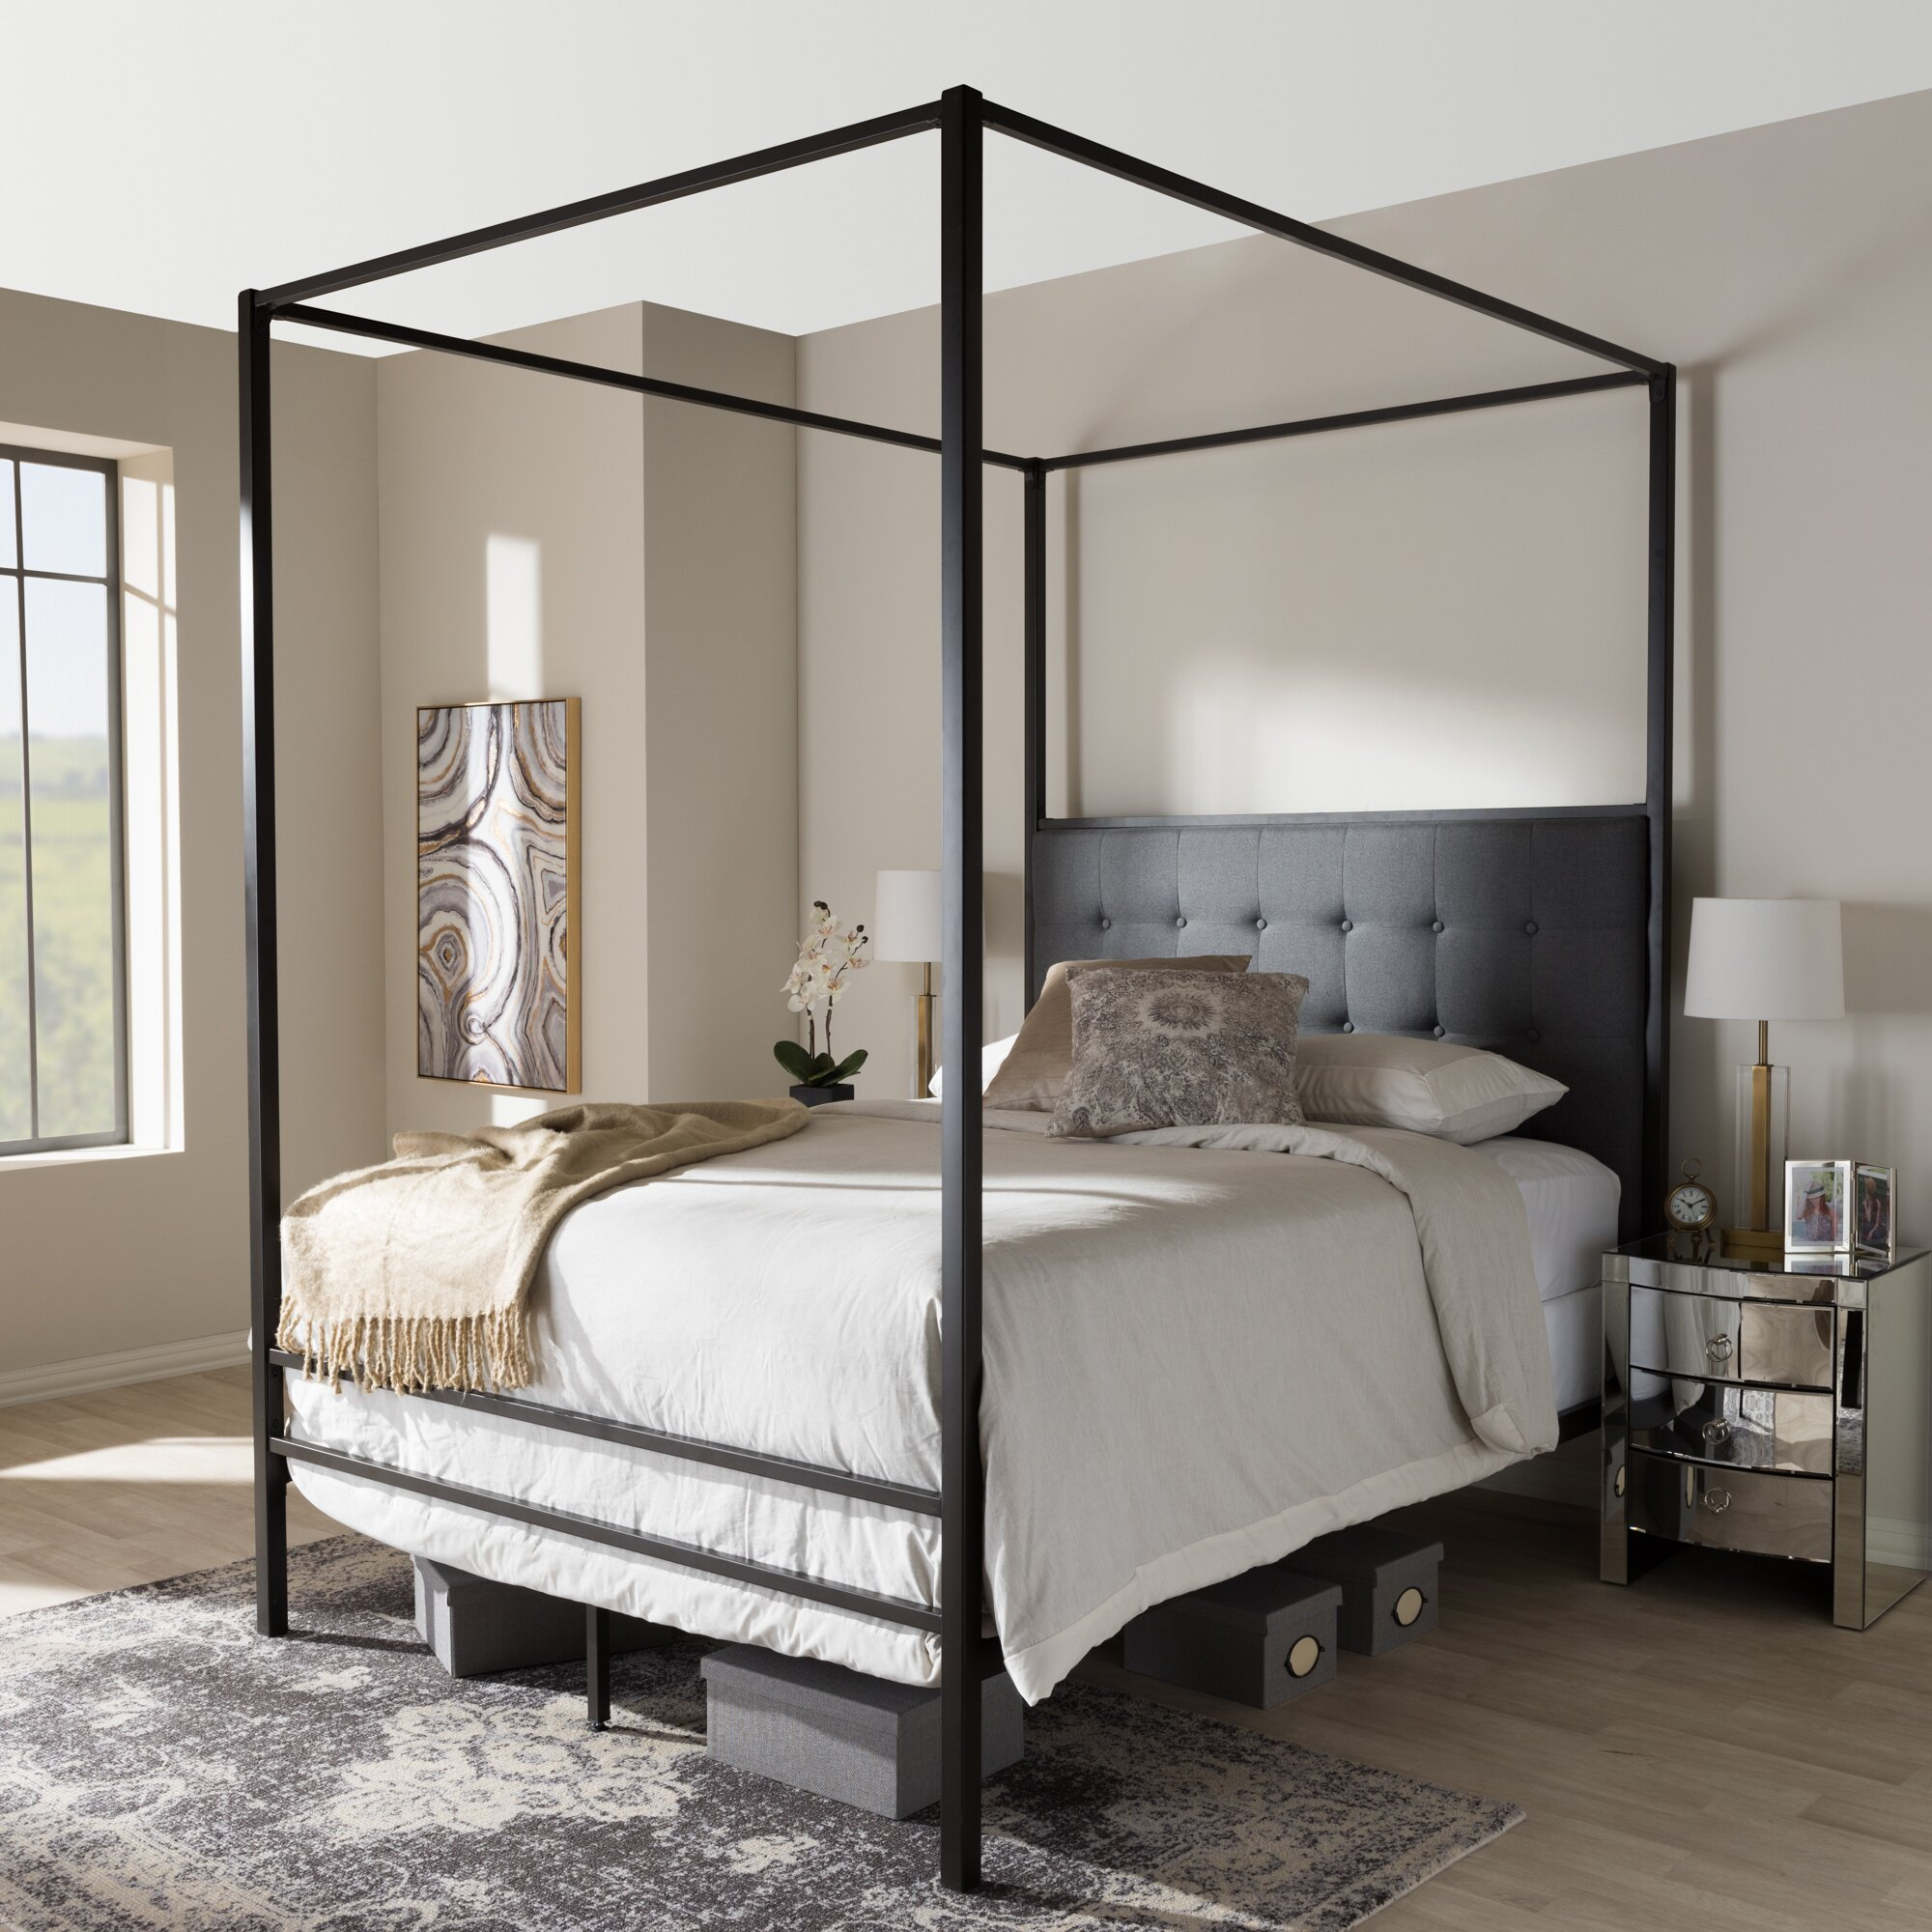 Metal Queen Poster Bed Frame Wrought Iron Canopy Headboard Footboard